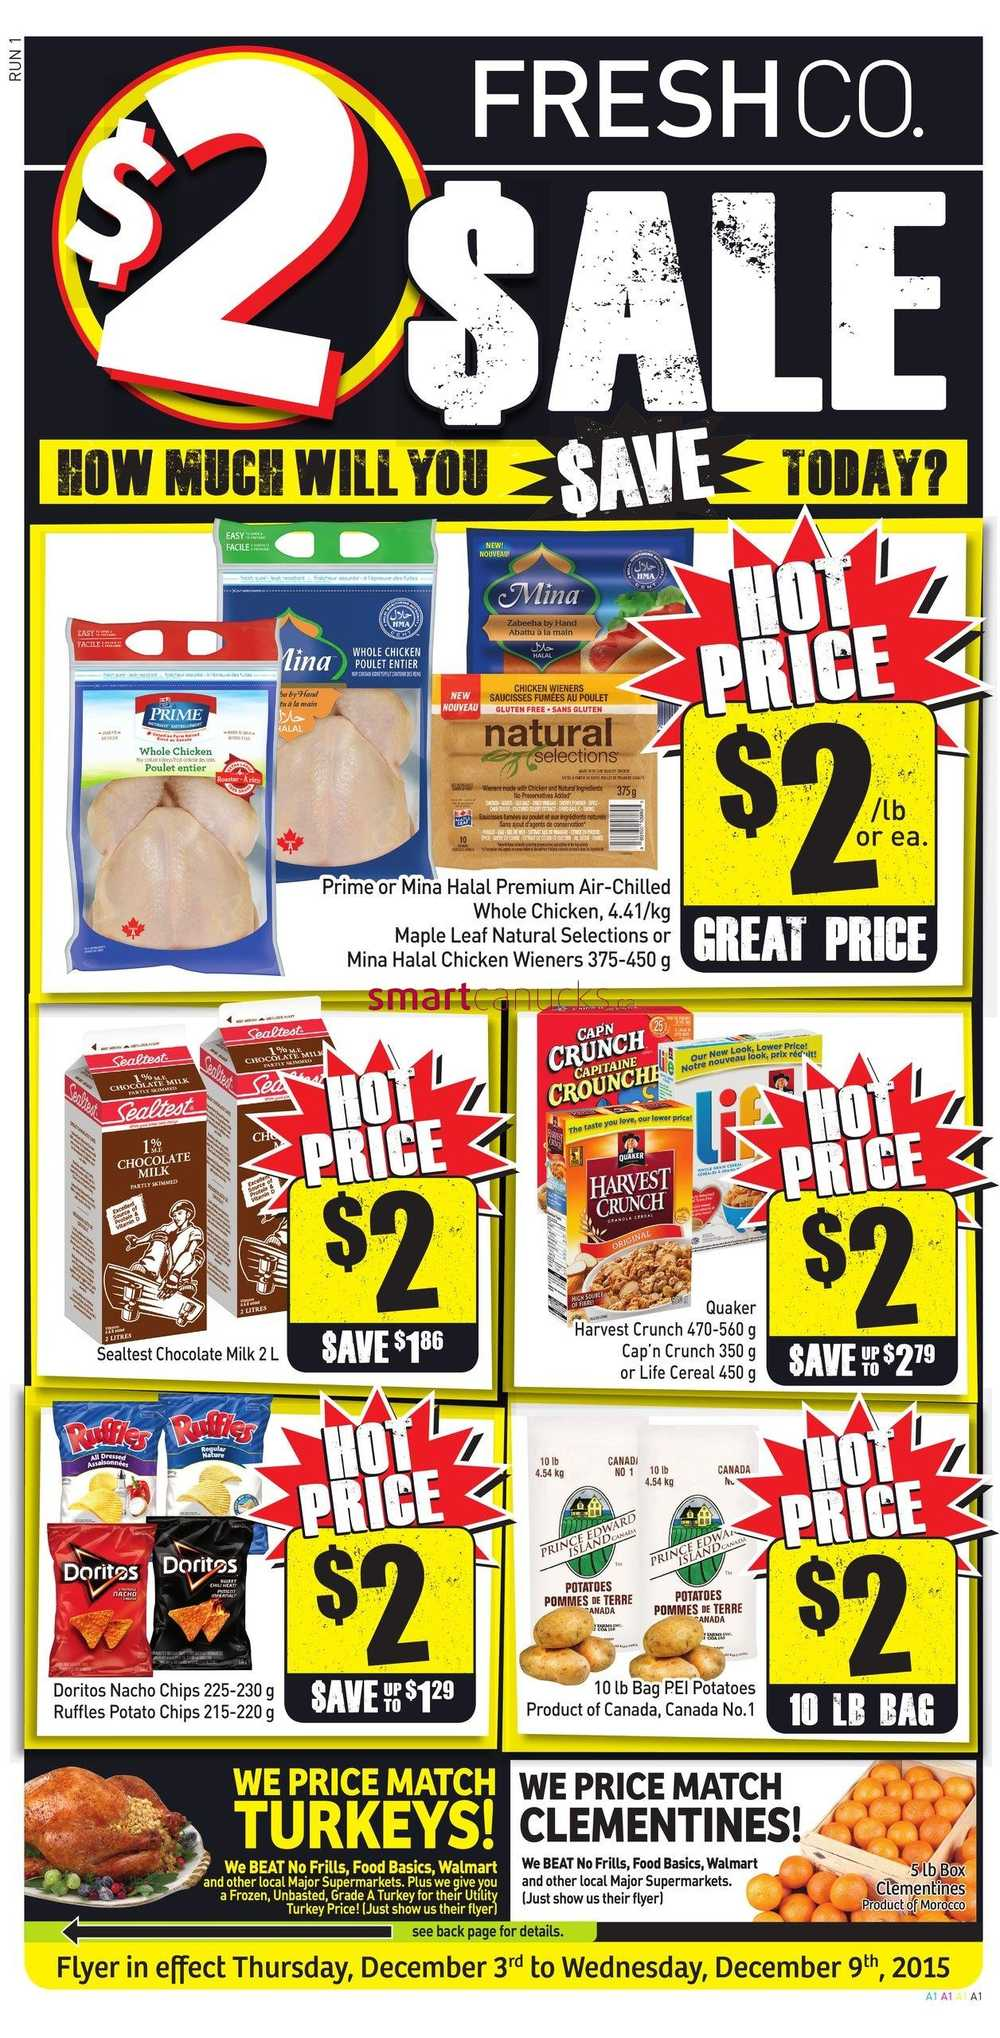 FreshCo Canada Weekly Flyers: Thursday, December 3 To